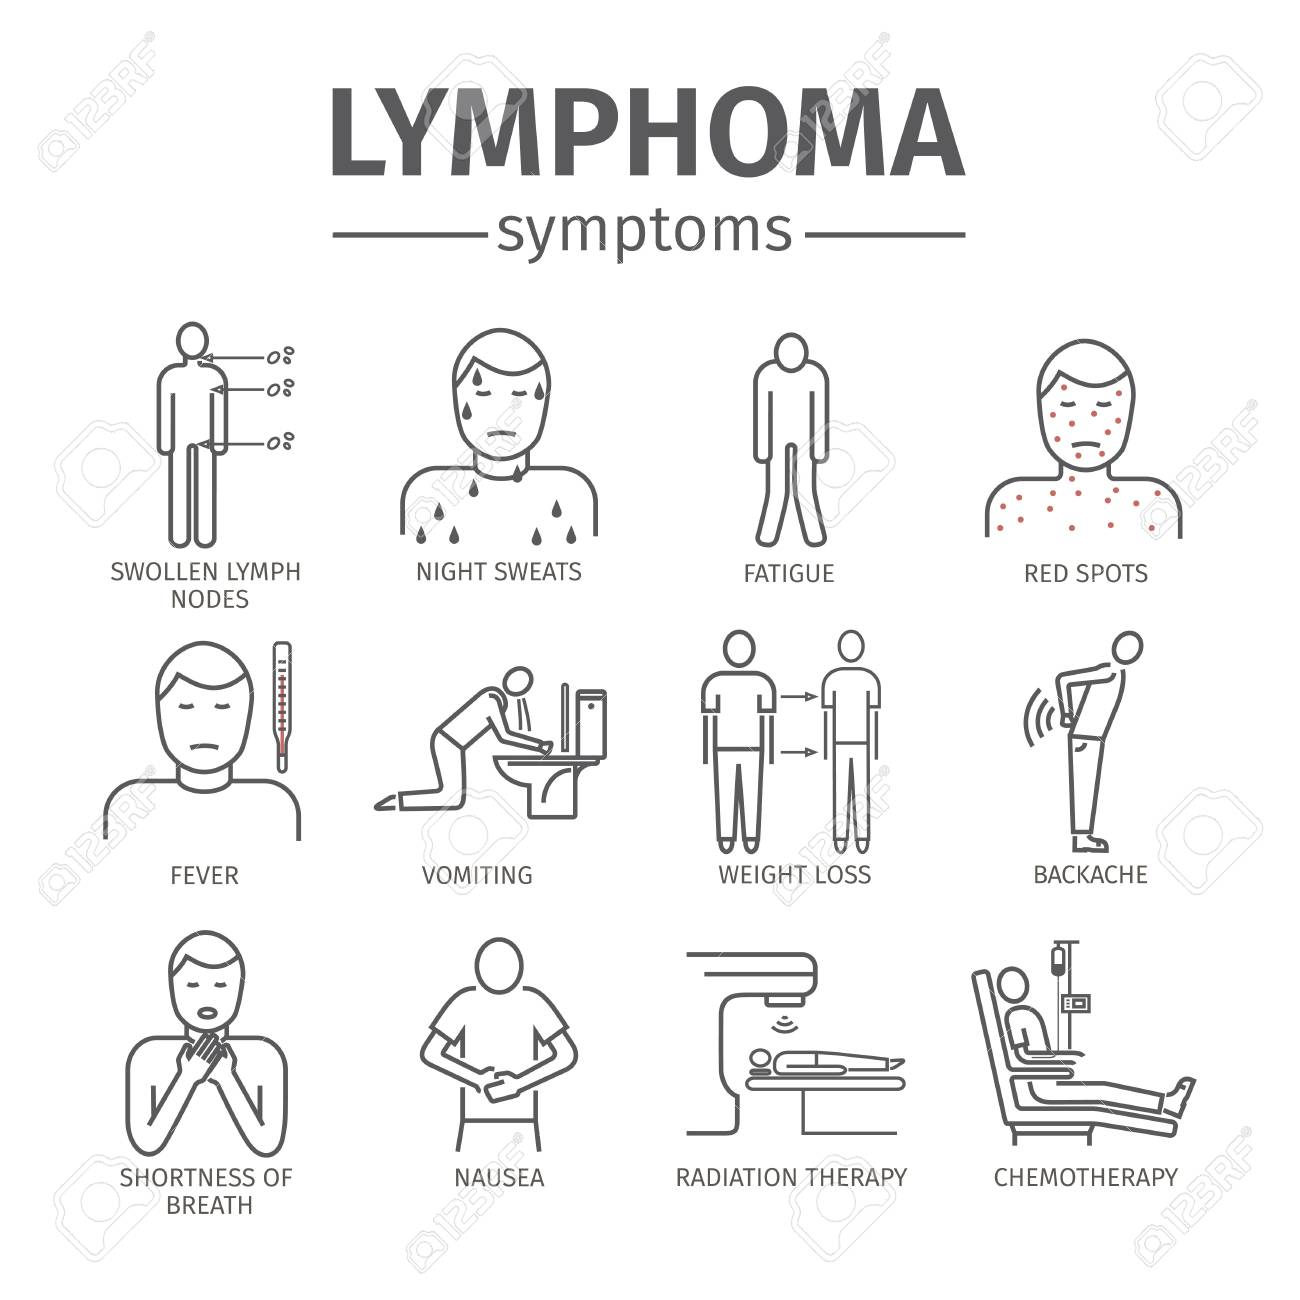 symptoms of lymphoma royalty free cliparts vectors and stock